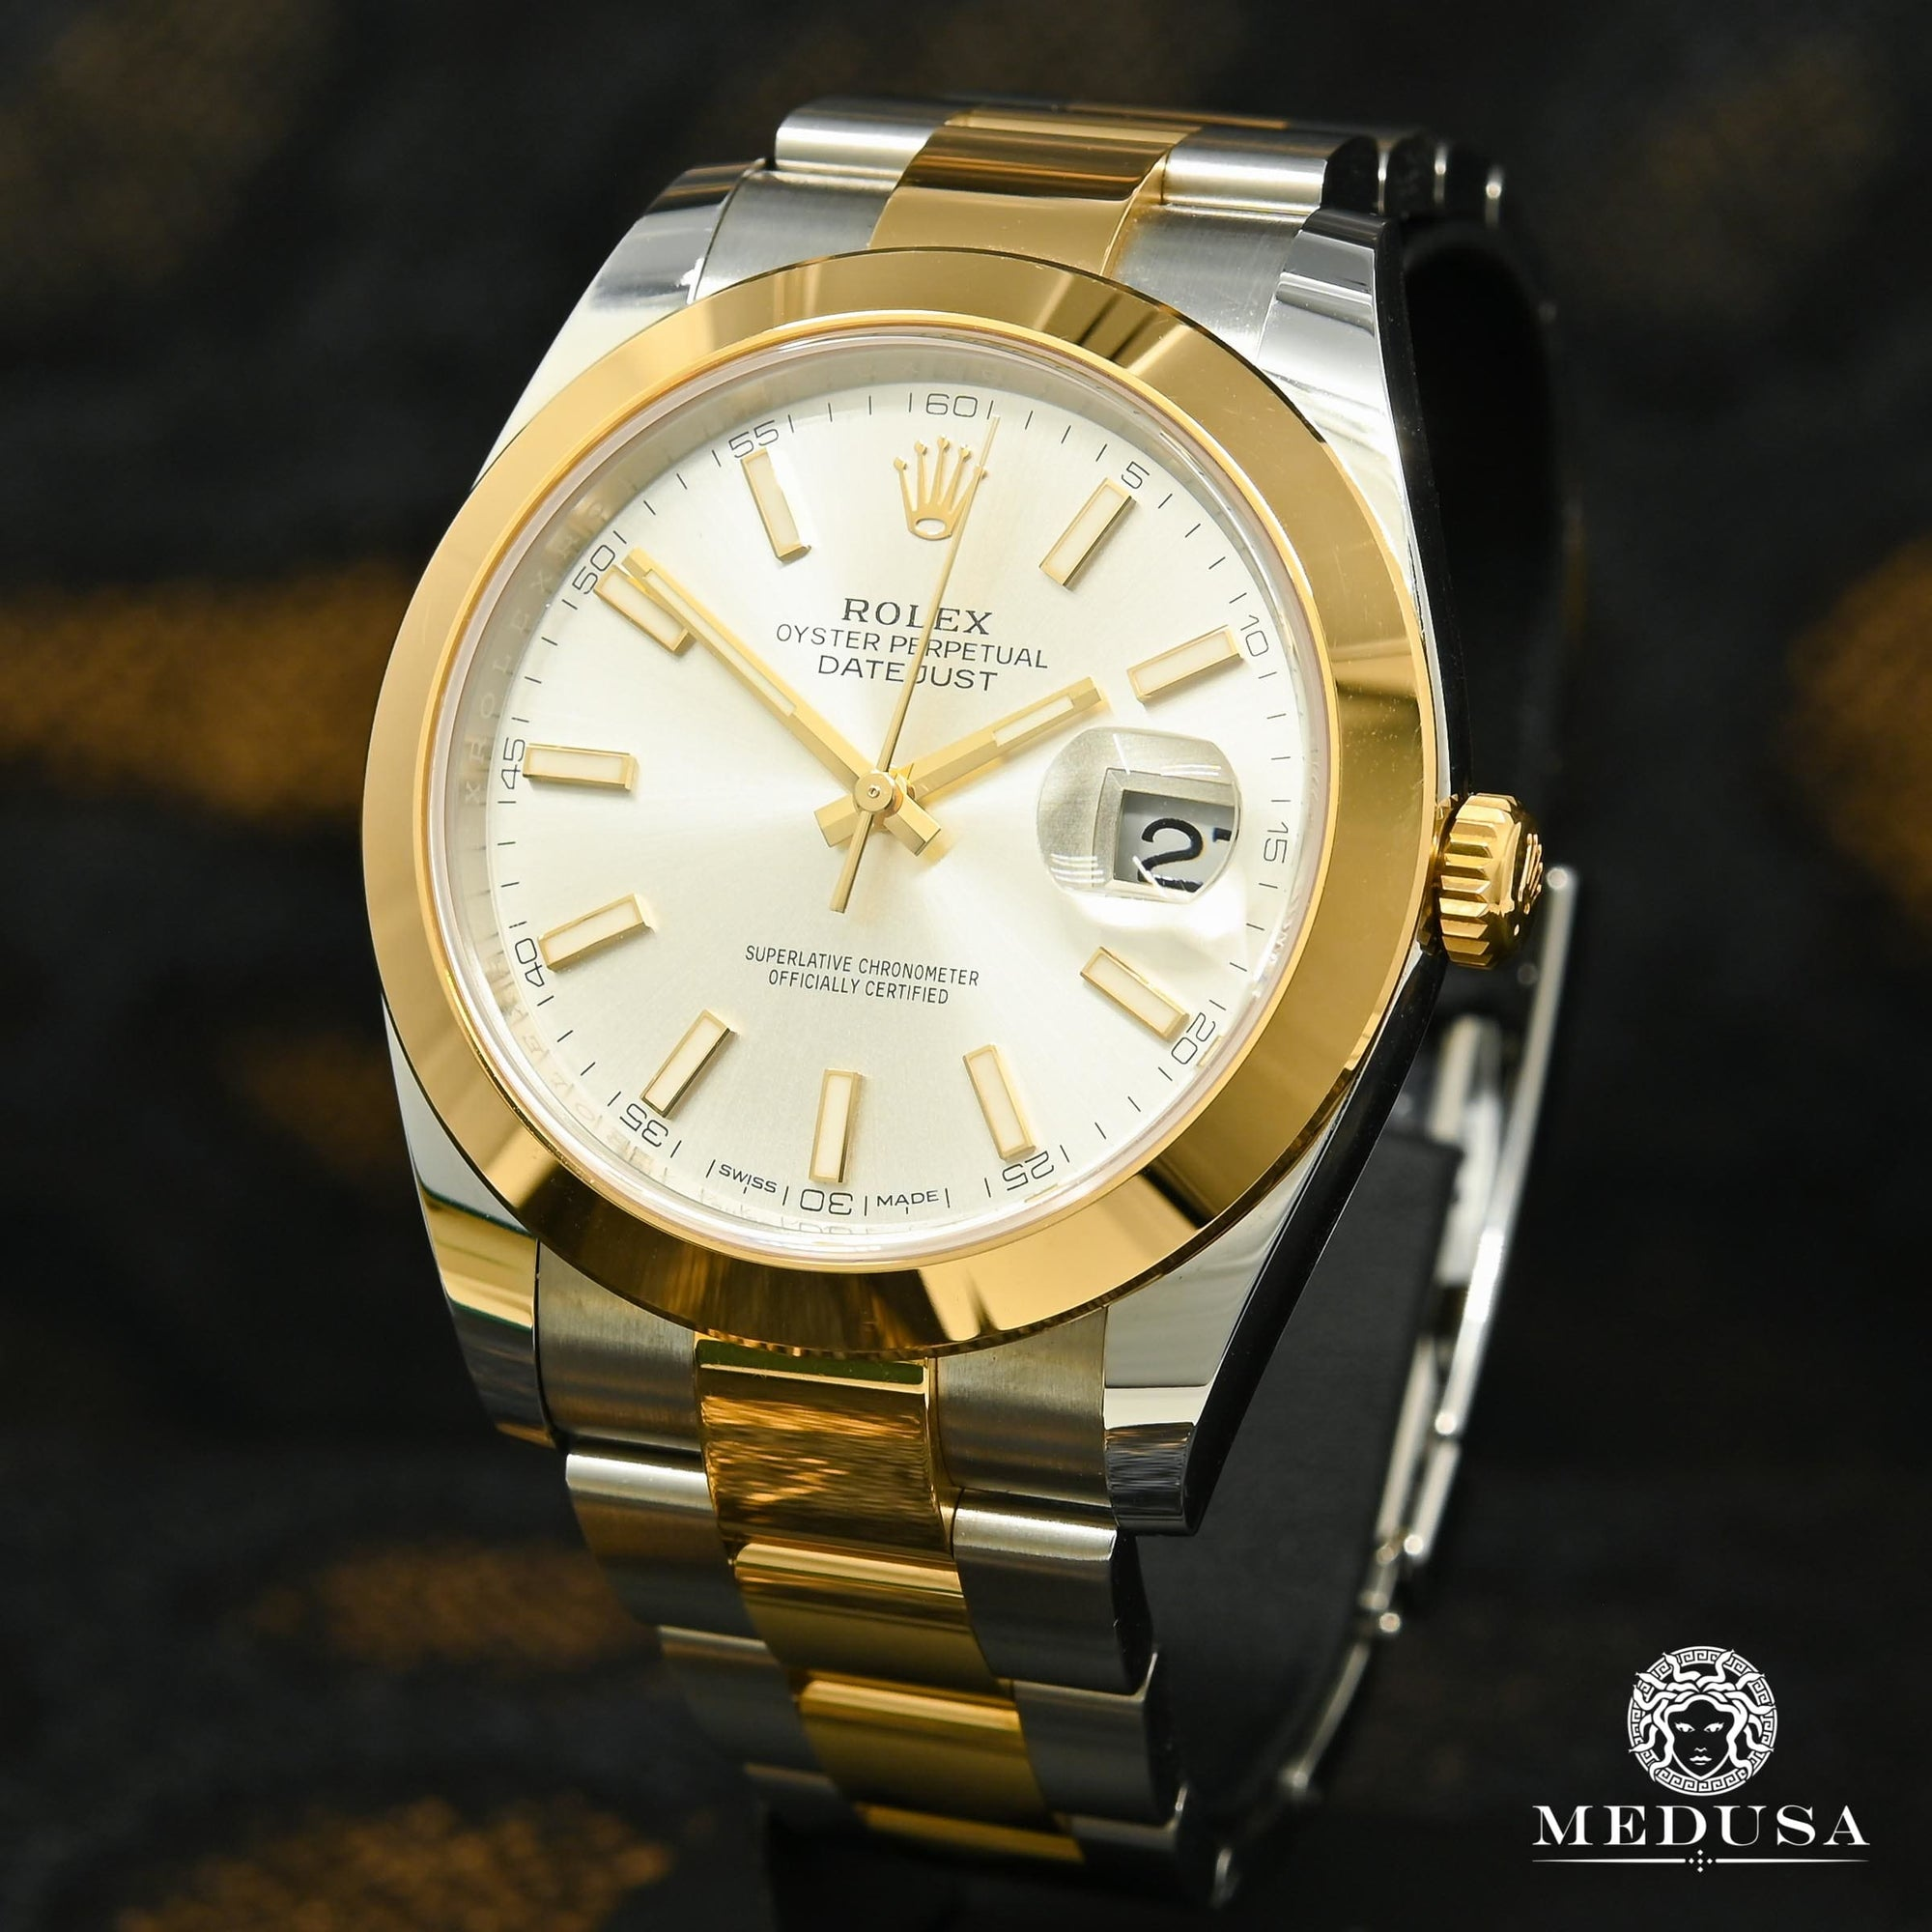 Rolex Datejust 41mm - Silver Stick Dial